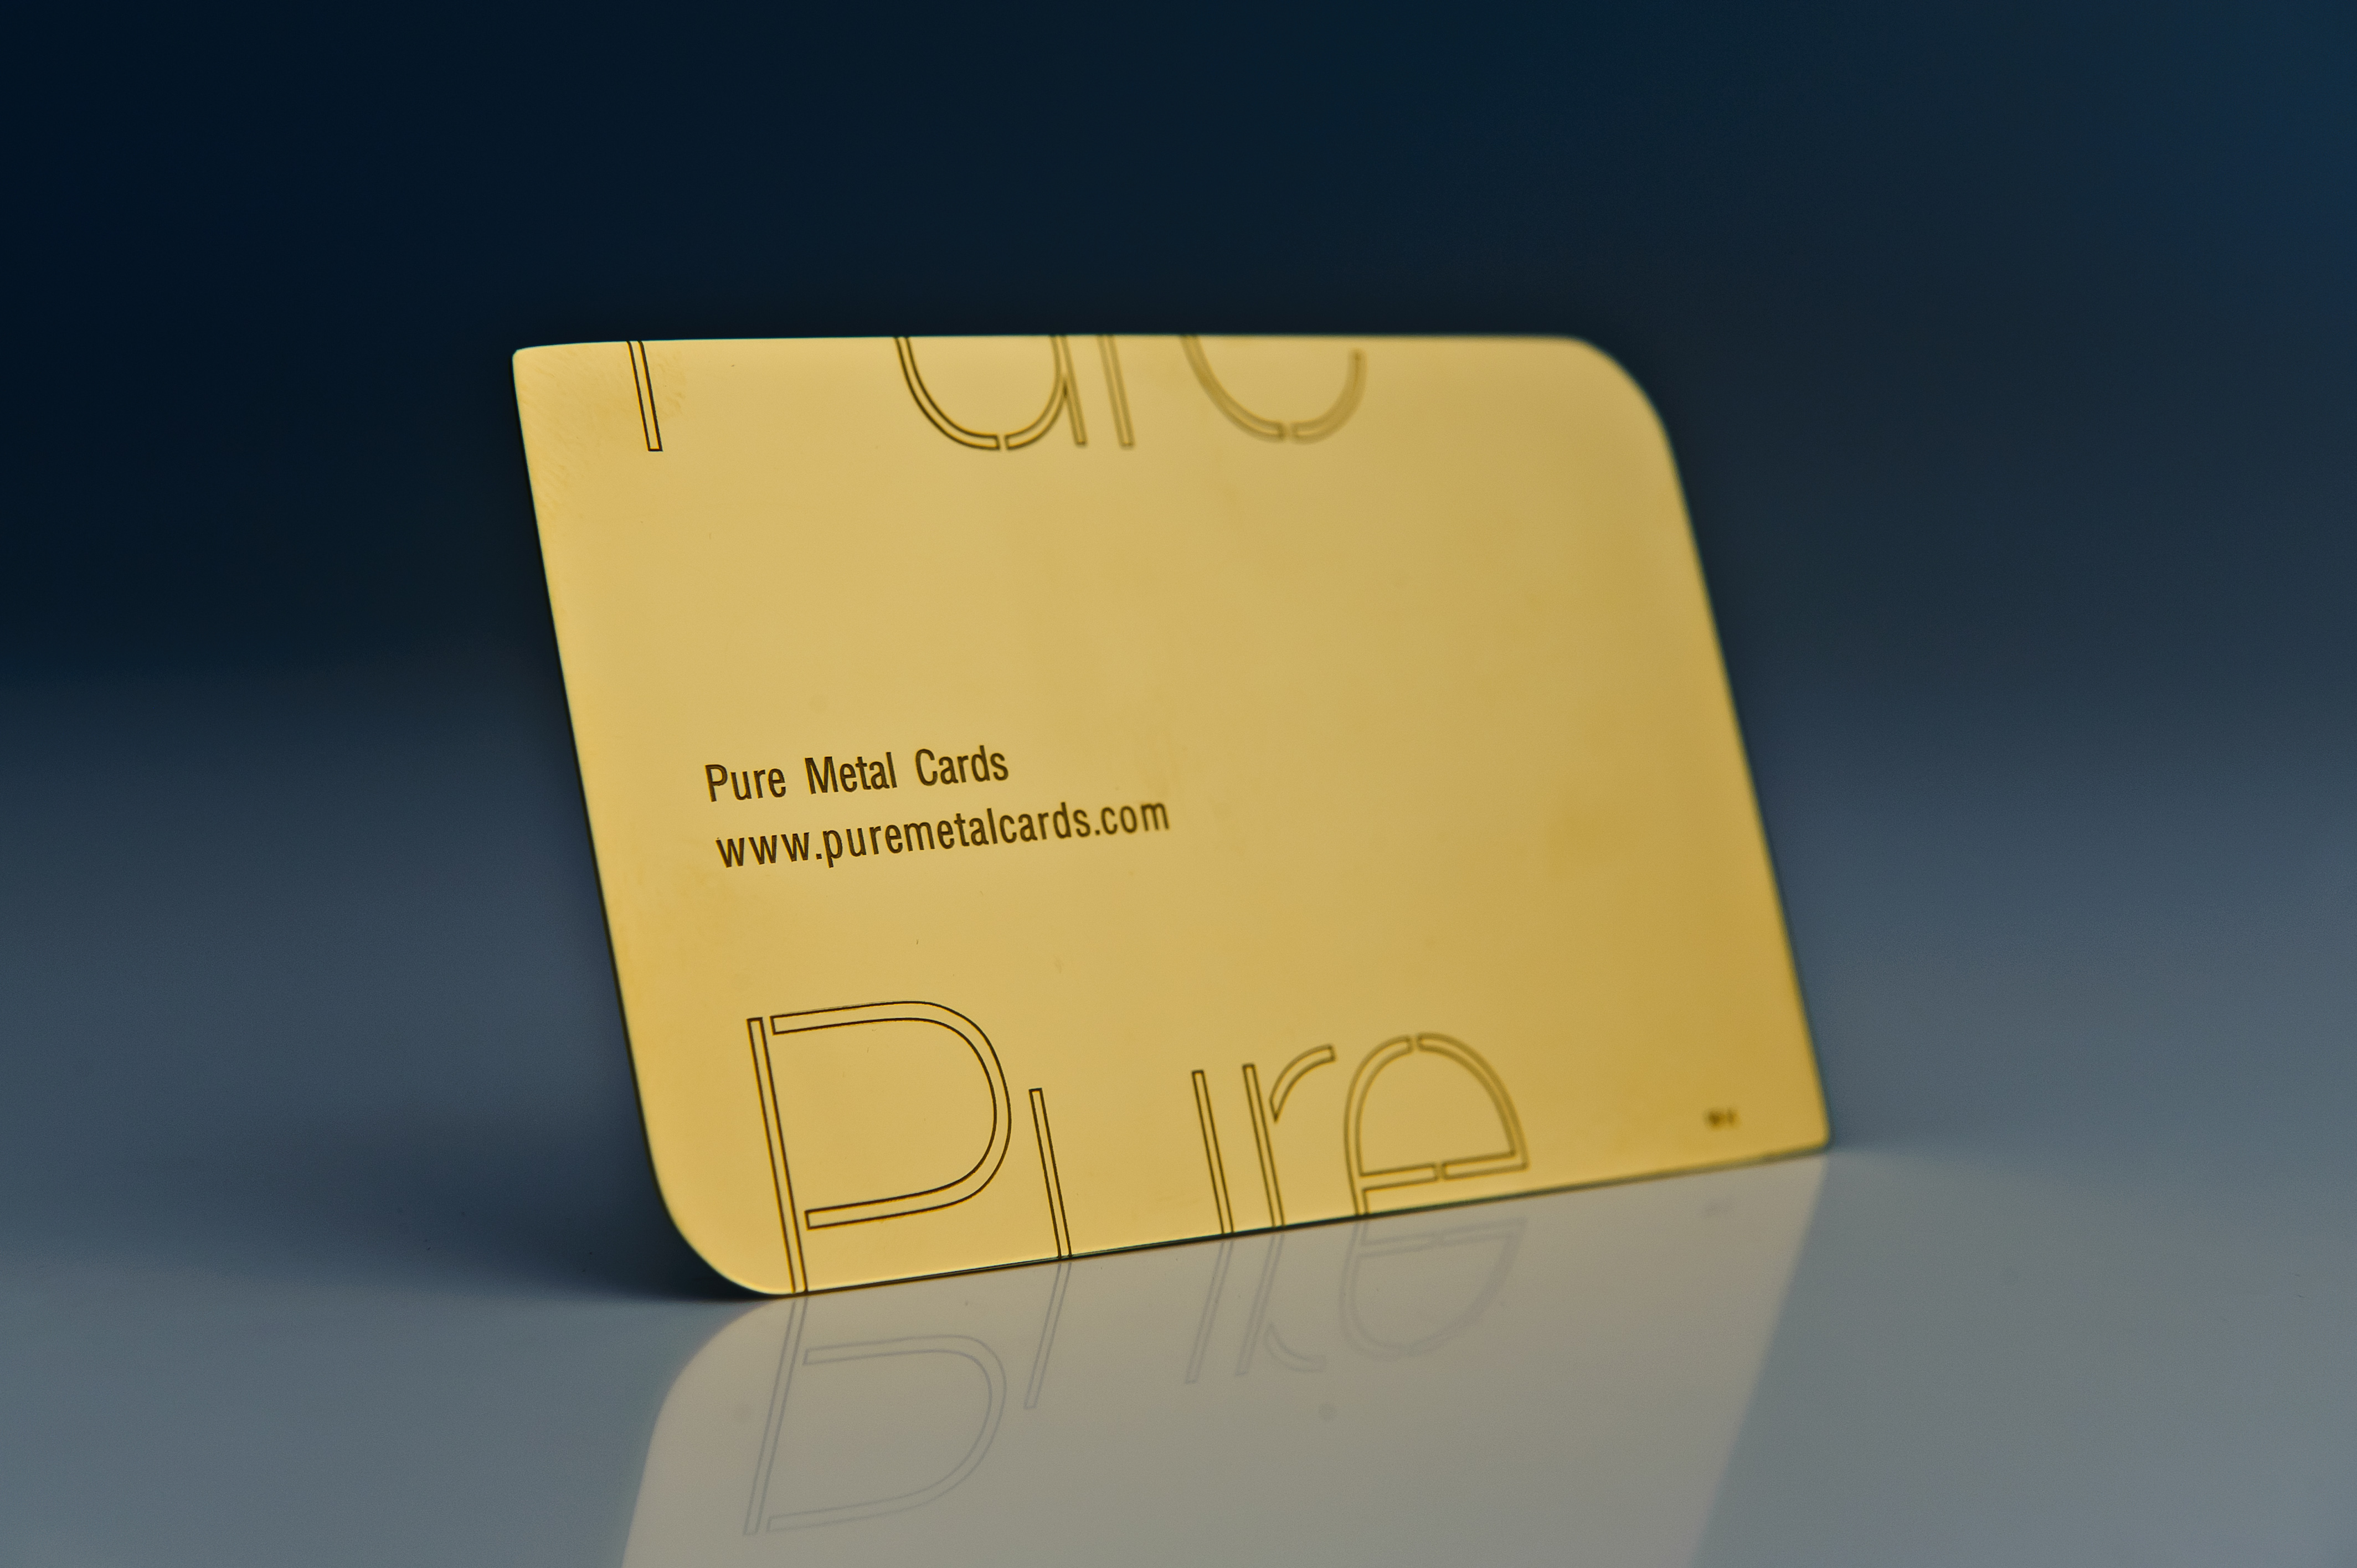 Business Card Make Over For Appeal and Functionality